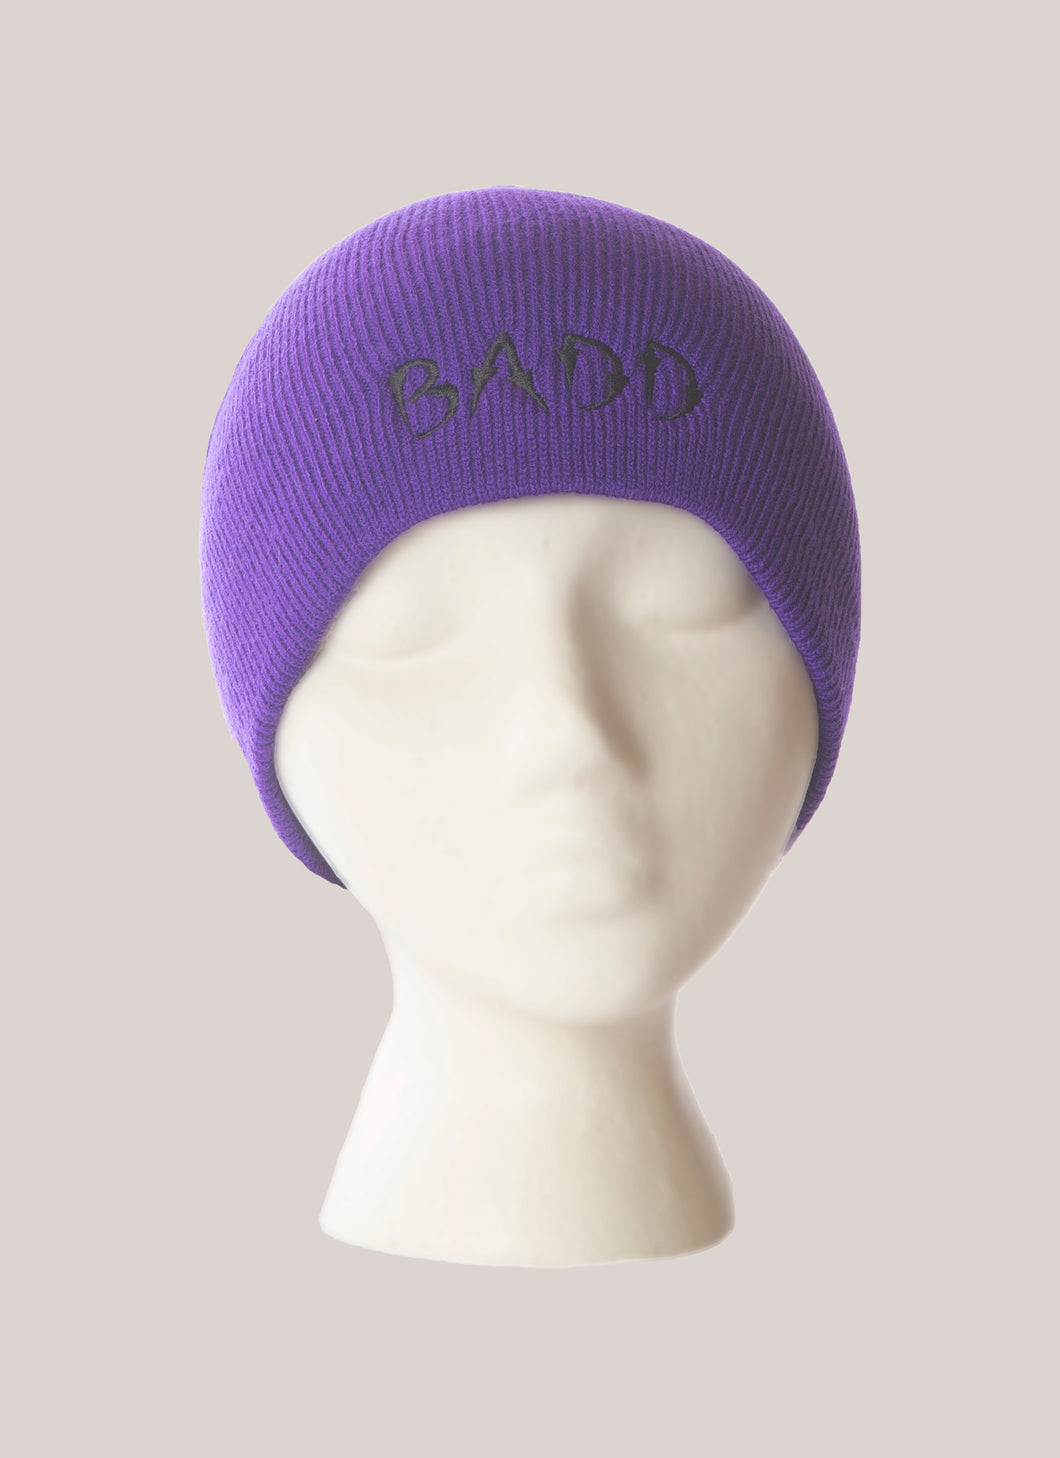 BADD Skull Cap Purple-Black Logo